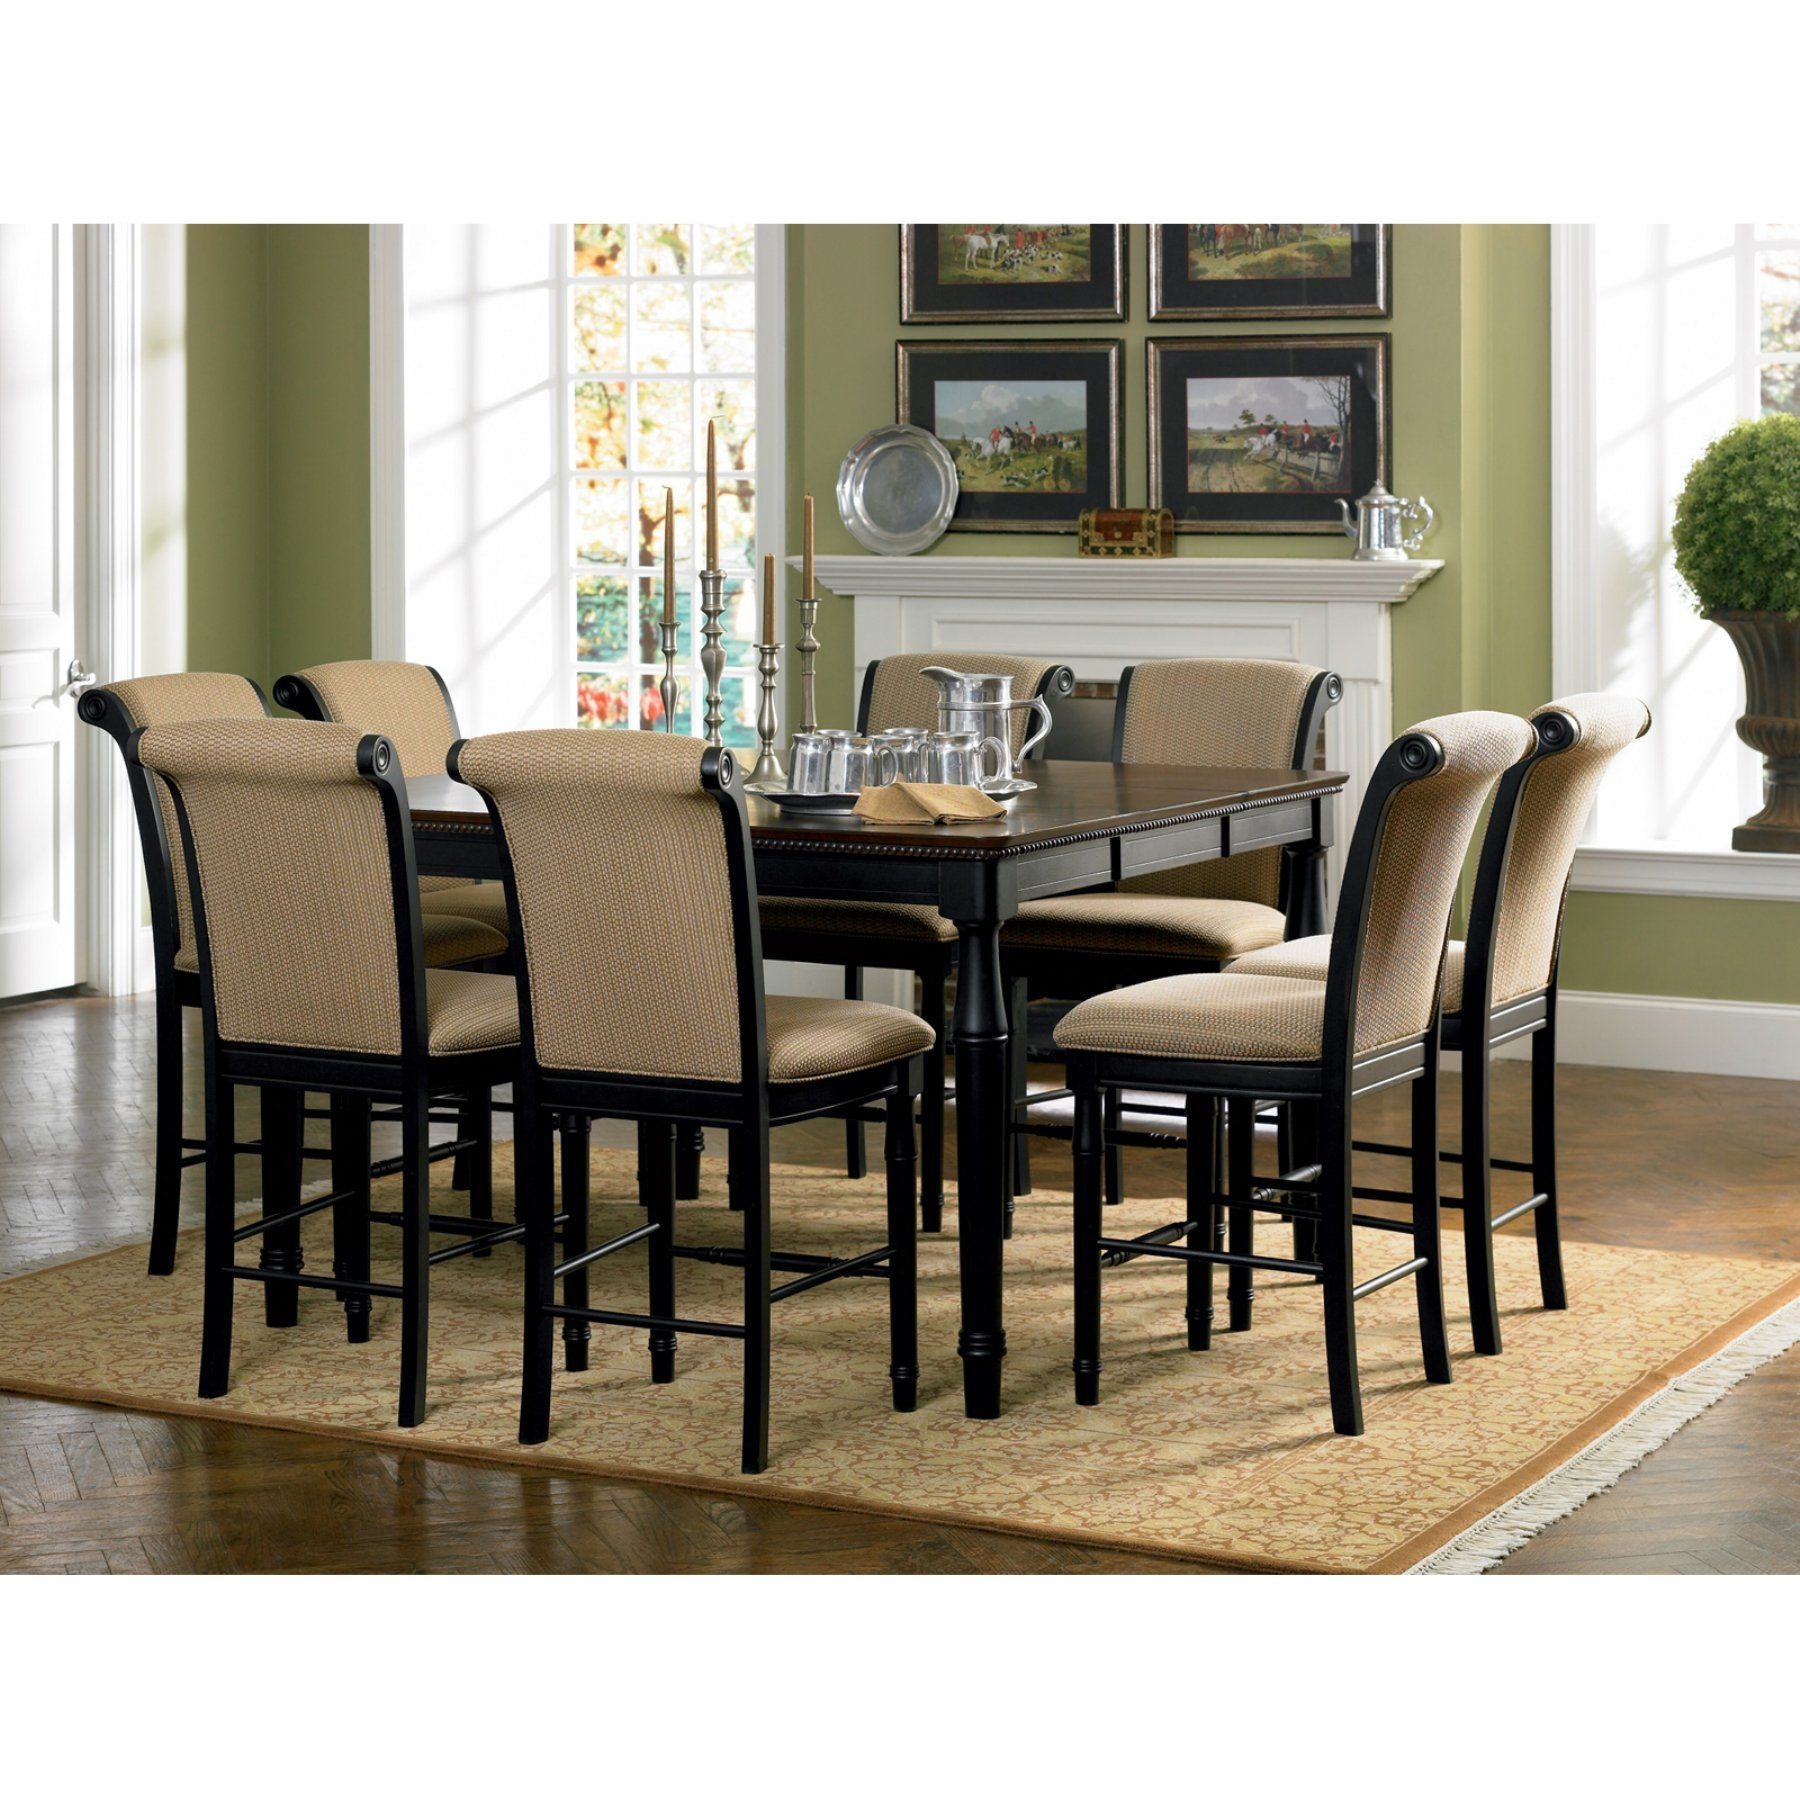 Coaster Cabrillo 9 Piece Counter Height Dining Table Set  Coa3284 Brilliant Counter Height Dining Room 2018